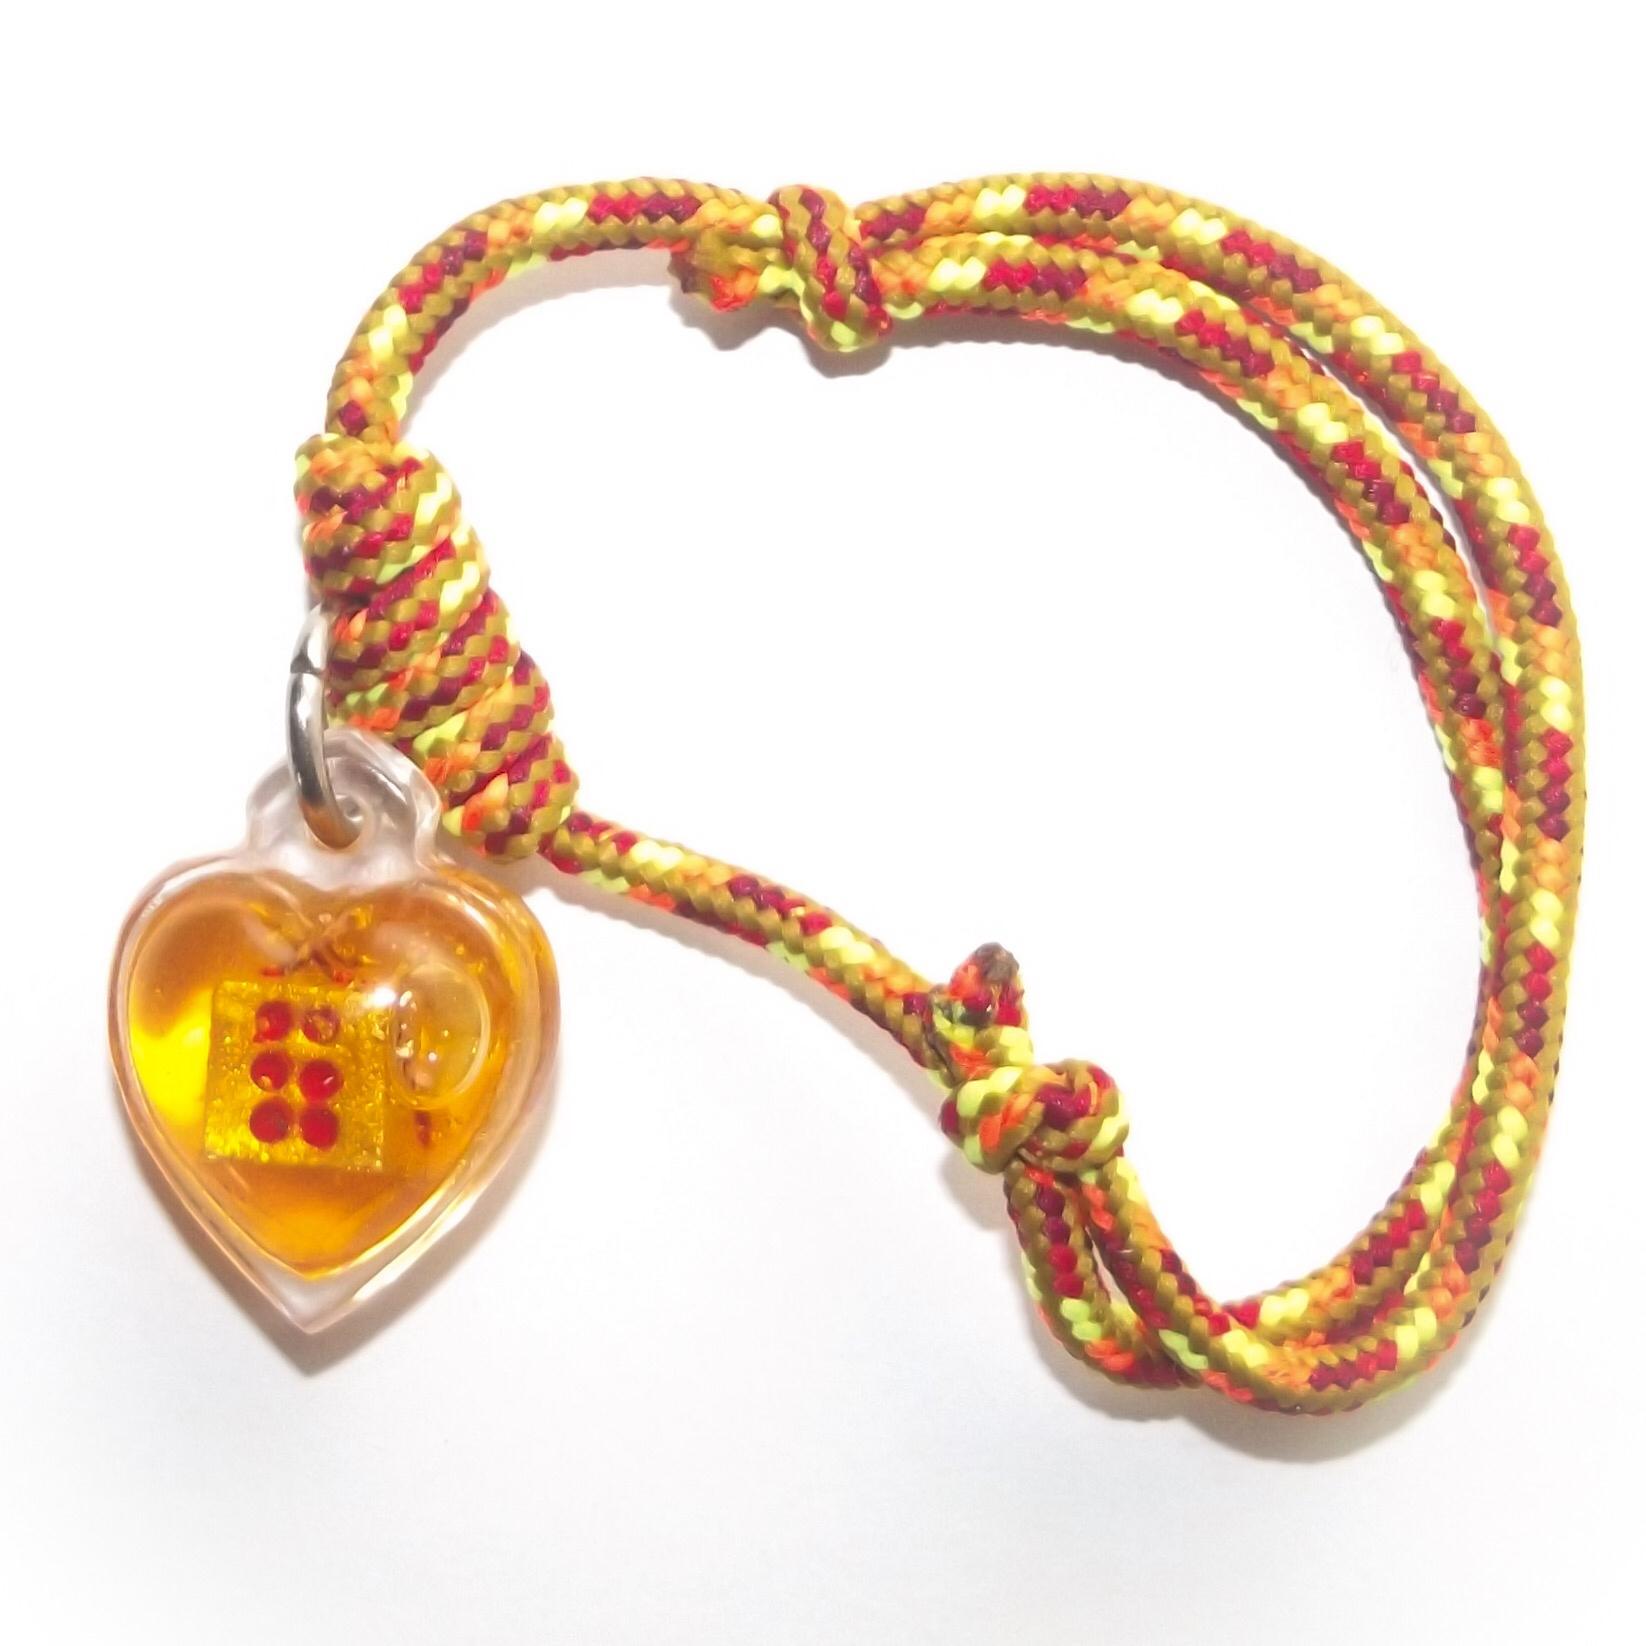 dice buddhist singles Lucky love heart dice in metta oil amulet for gamblers  light one single incense stick when performing the offering and  buddhist amulets 2,409 views.